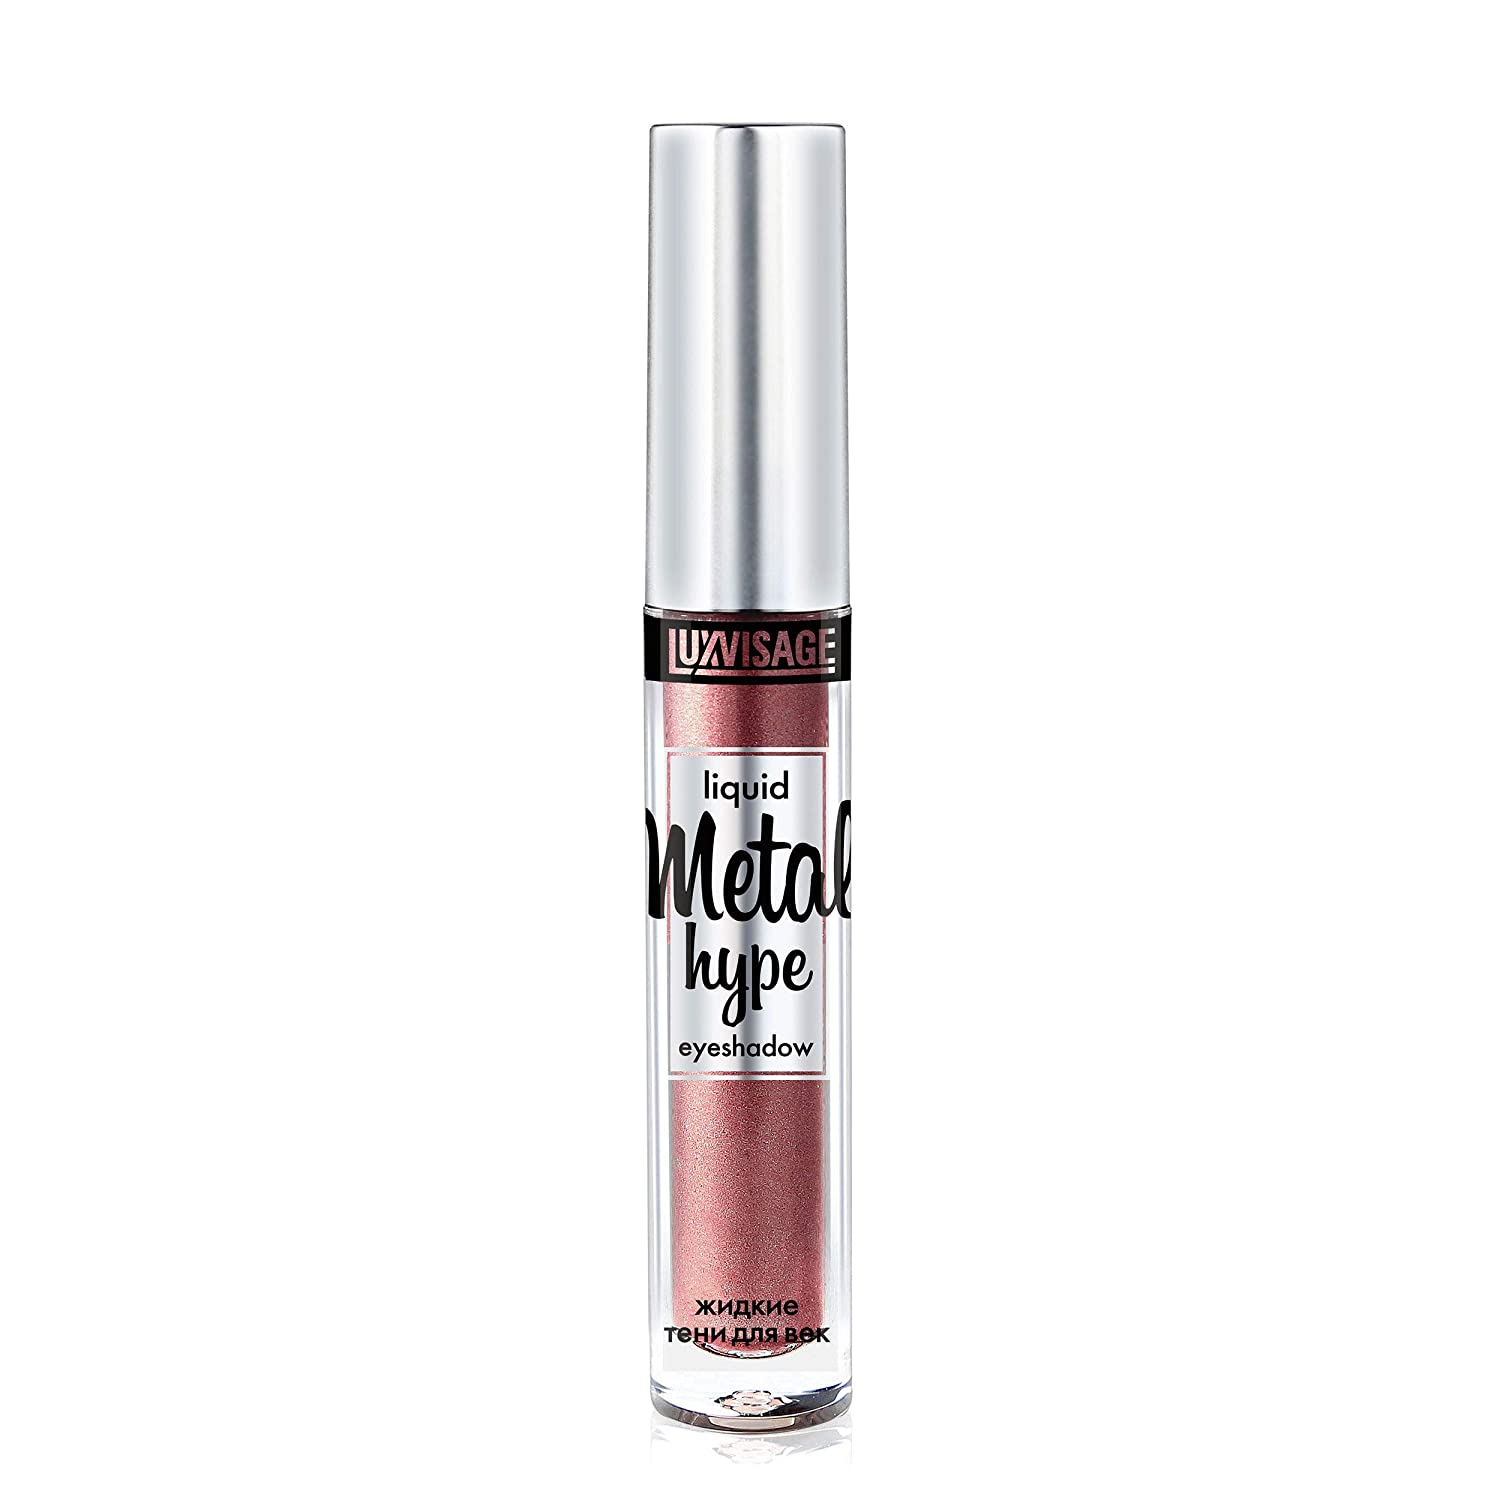 Luxvisage Long Lasting Highly Pigmented Metallic Liquid Eyeshadow Metal Hype, Color 11 Red Copper